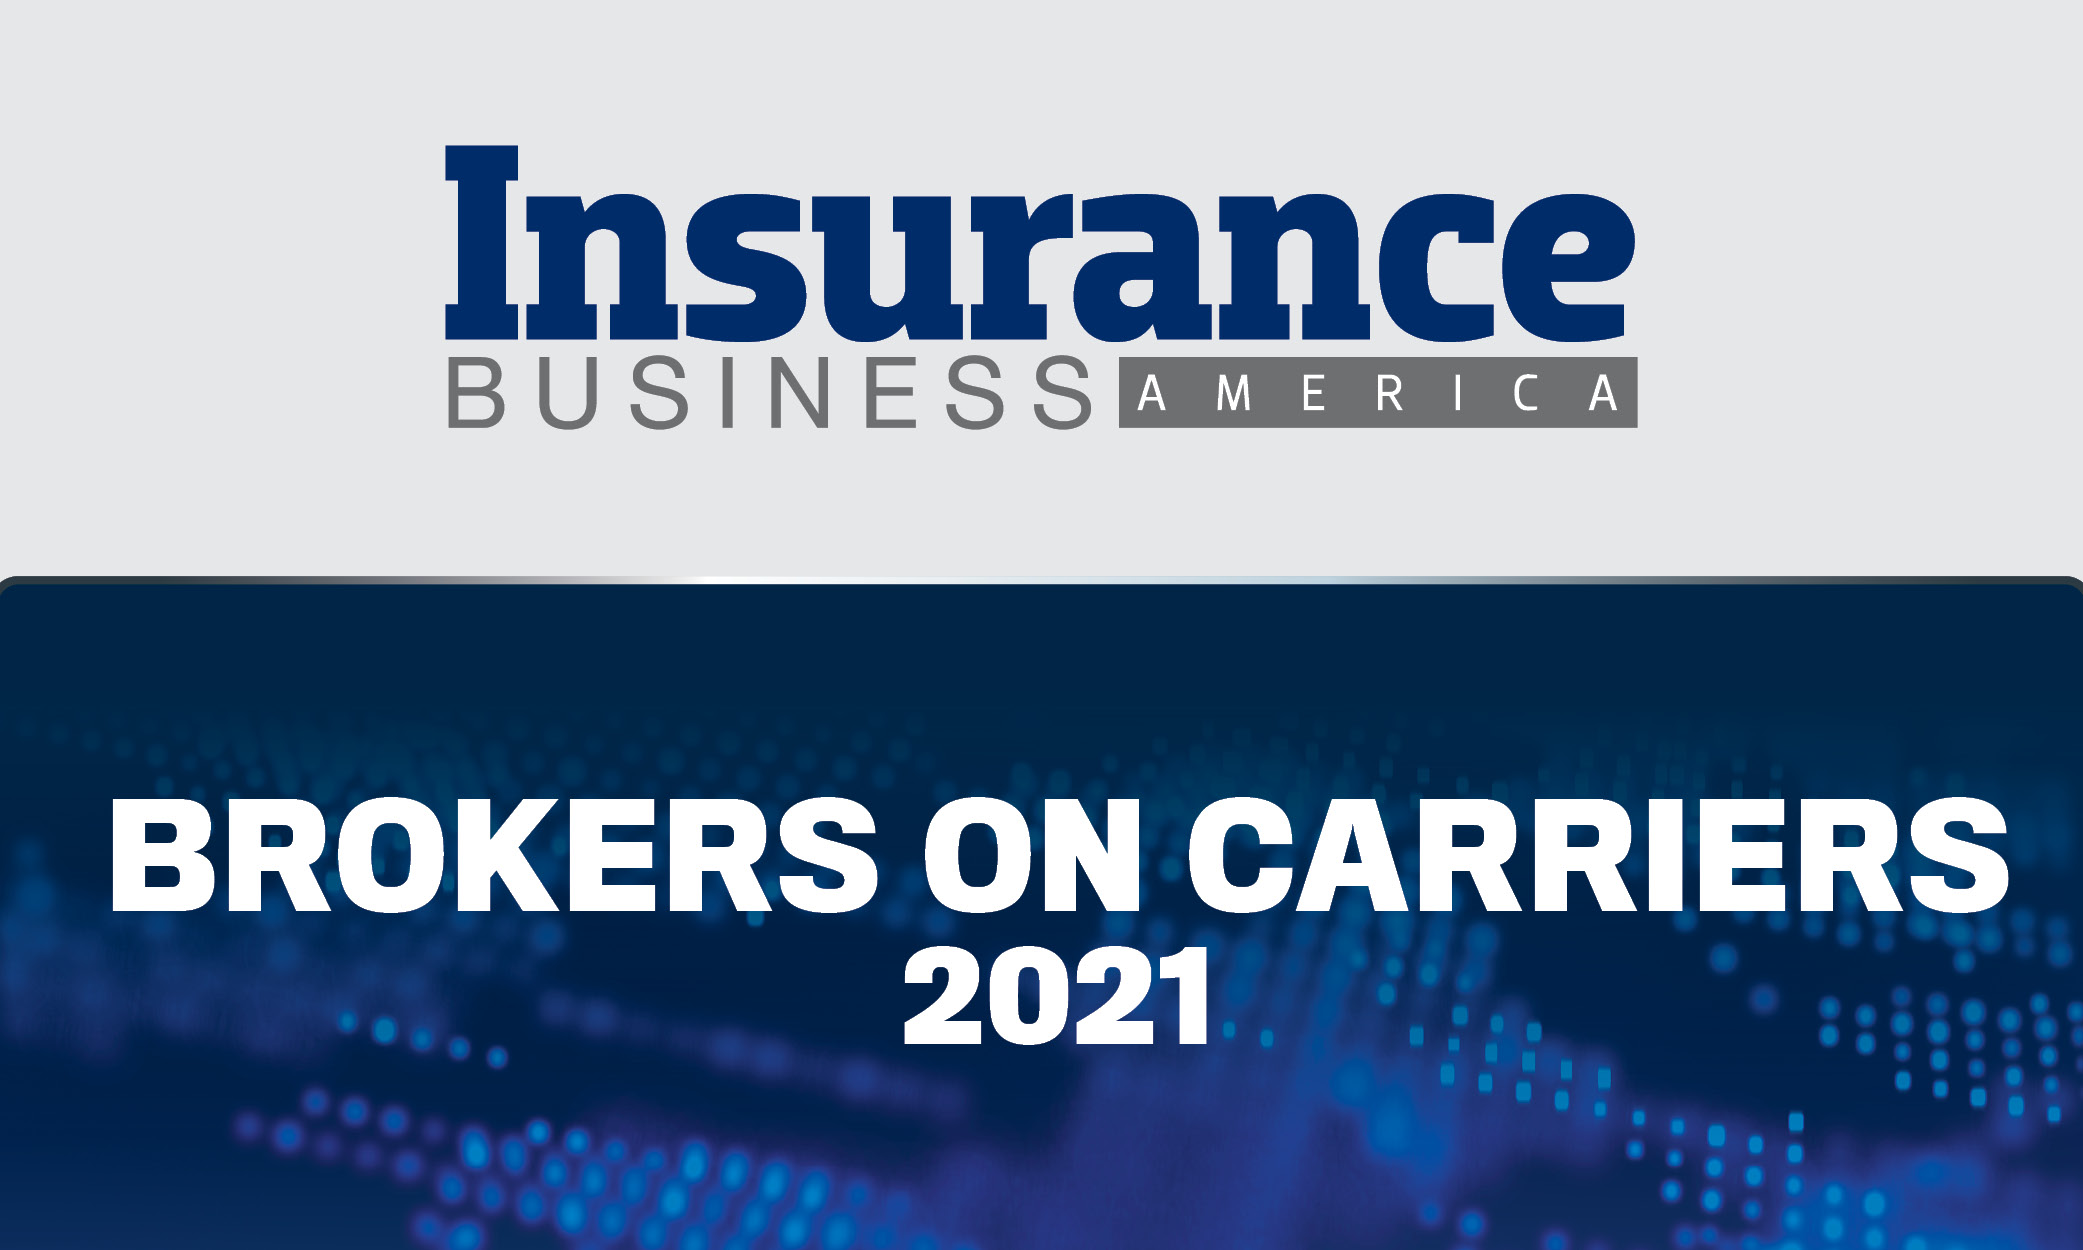 Brokers on Carriers 2021